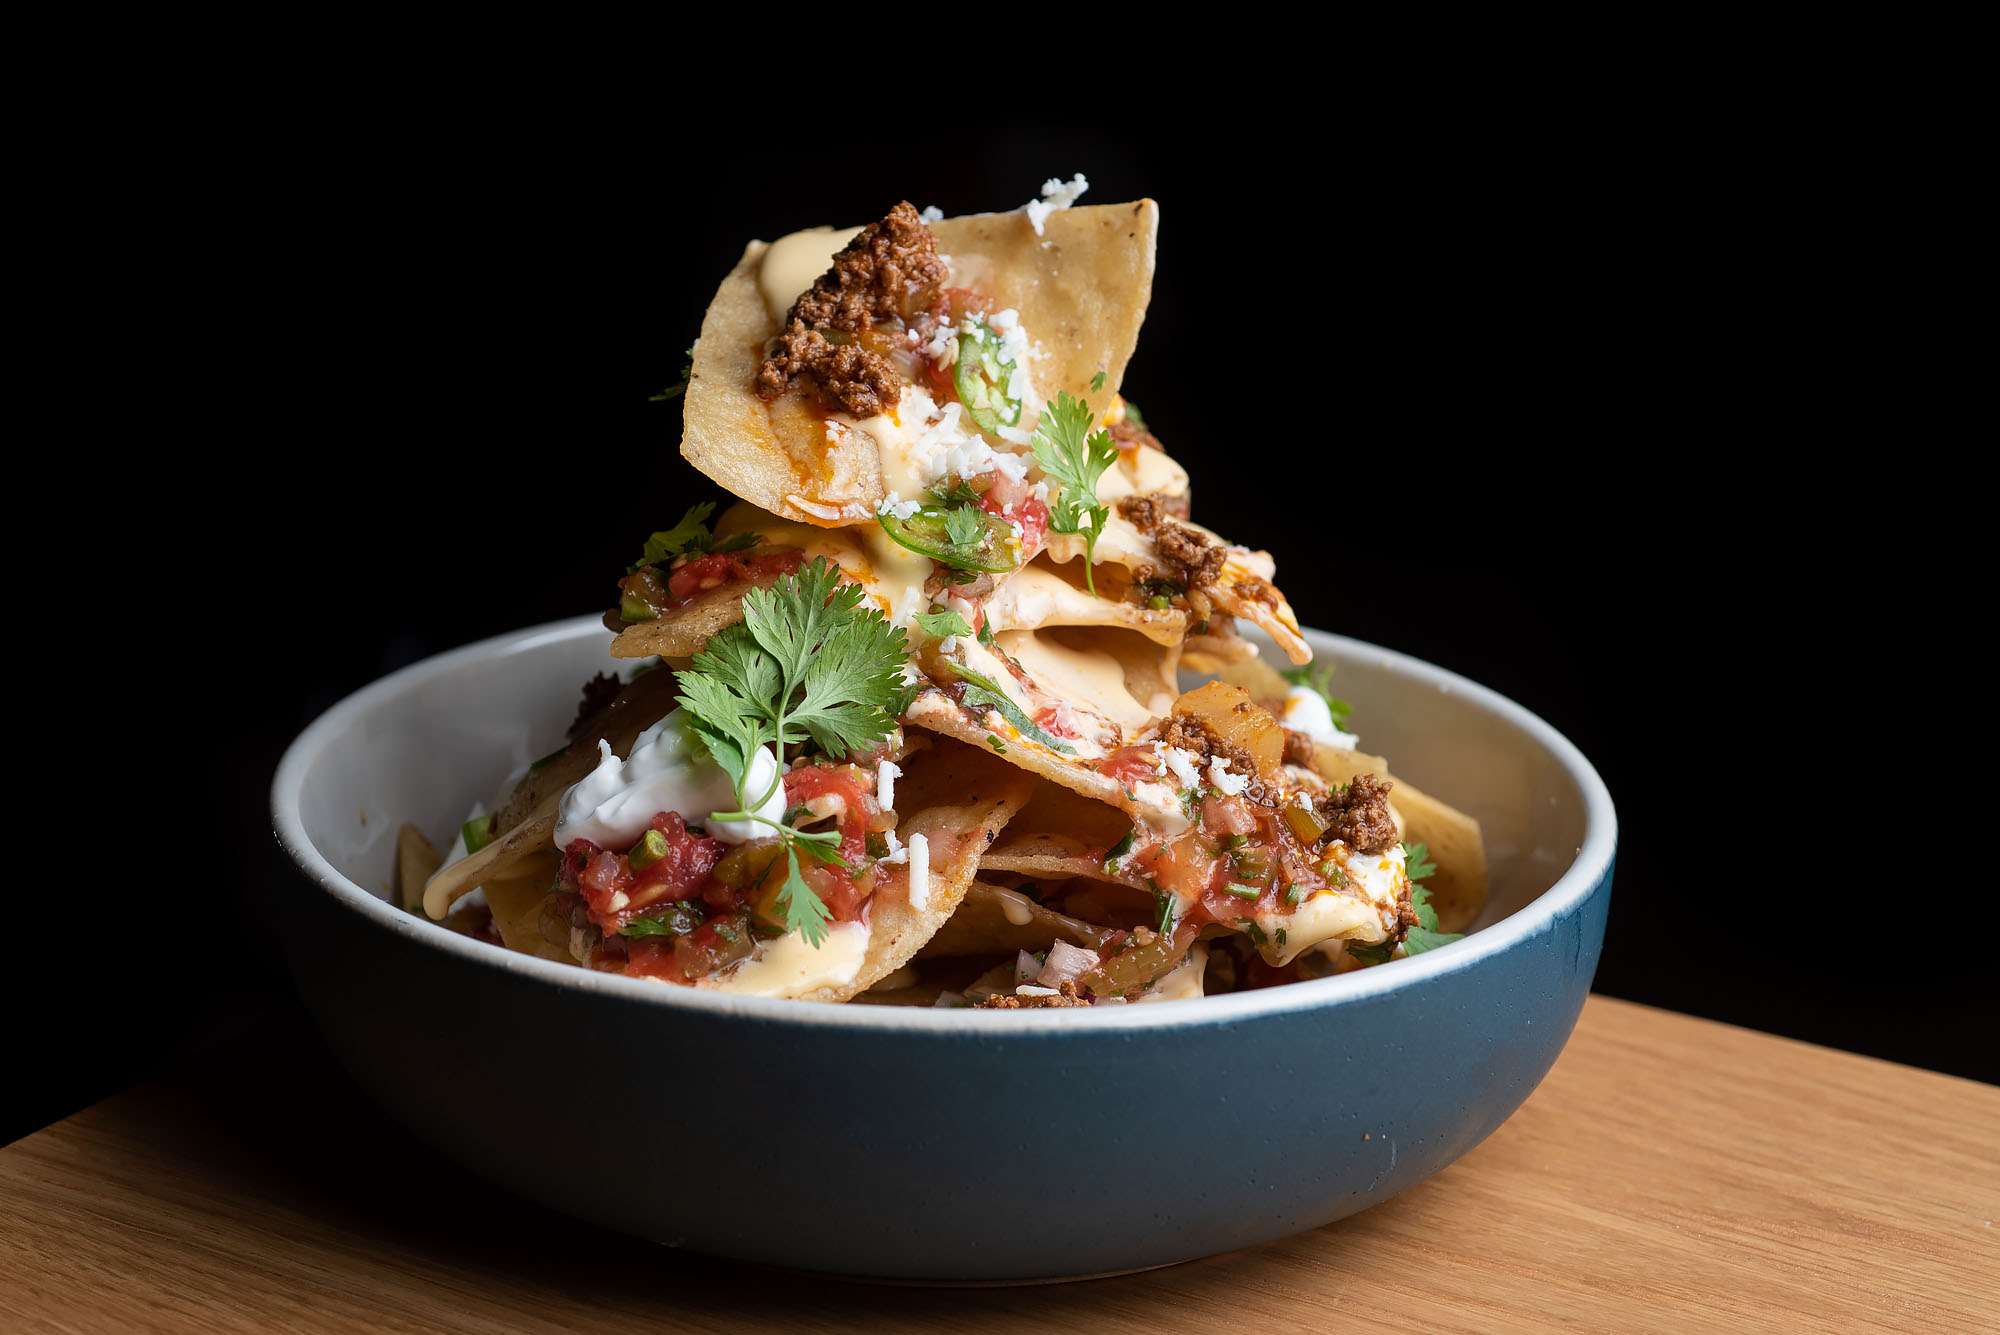 Stack of nachos with meat, cheese, and condiments at Amacita restaurant in Culver City on a wood table and a dark background.